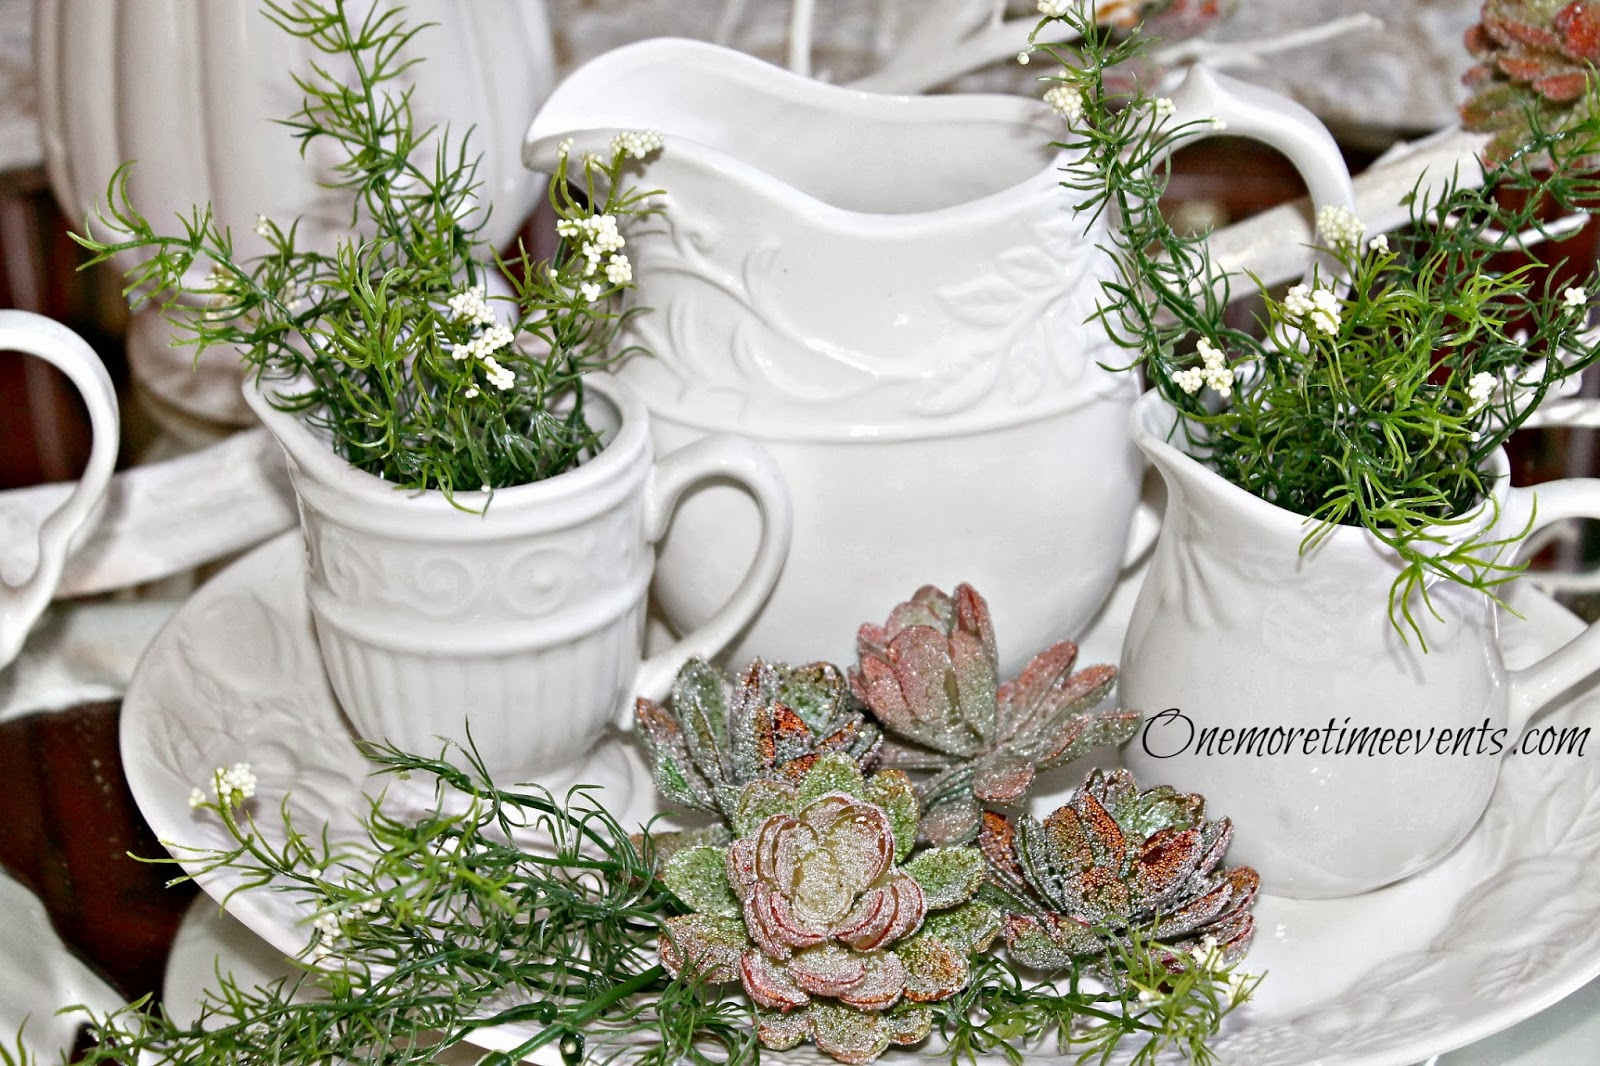 White Pitchers with succulents at One More Time Events.com